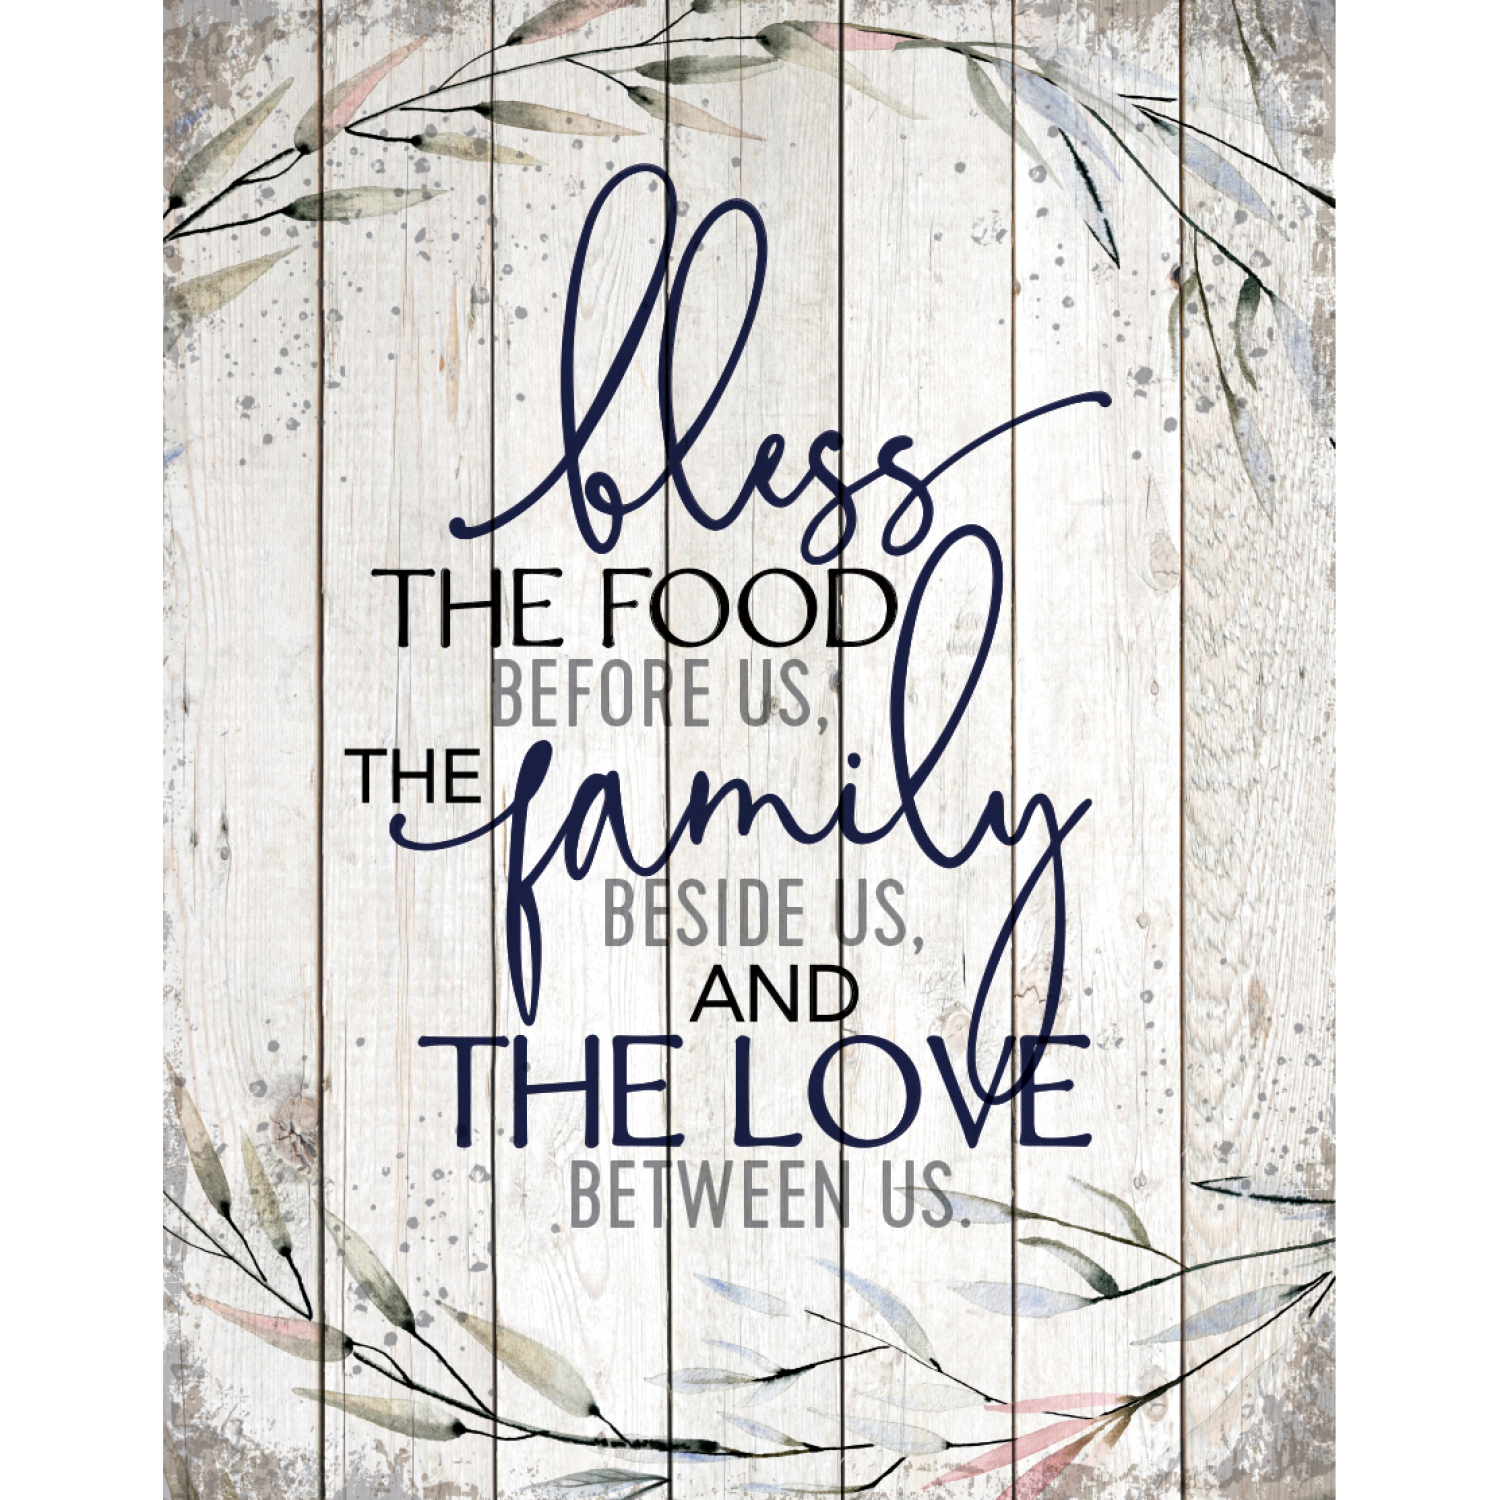 Bless The Food Wood Plaque 11.75 Inches X 15 Inches